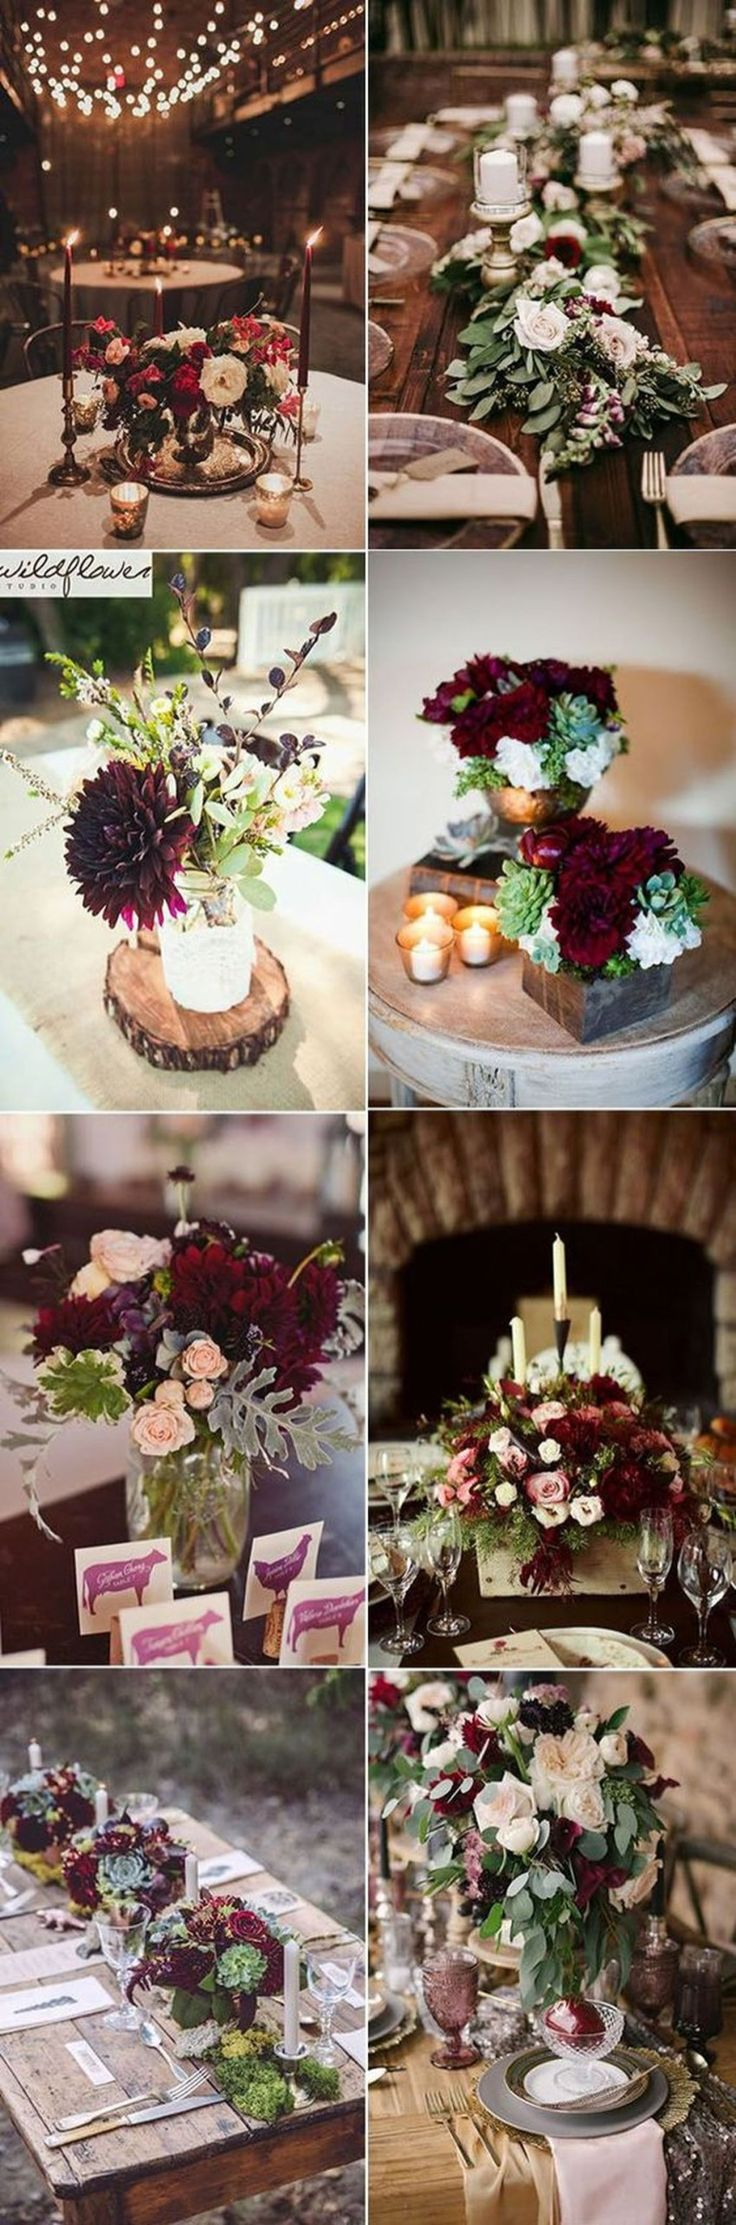 Wedding decorations for reception january 2019  best Wedding images on Pinterest  Wedding ideas Wedding frocks